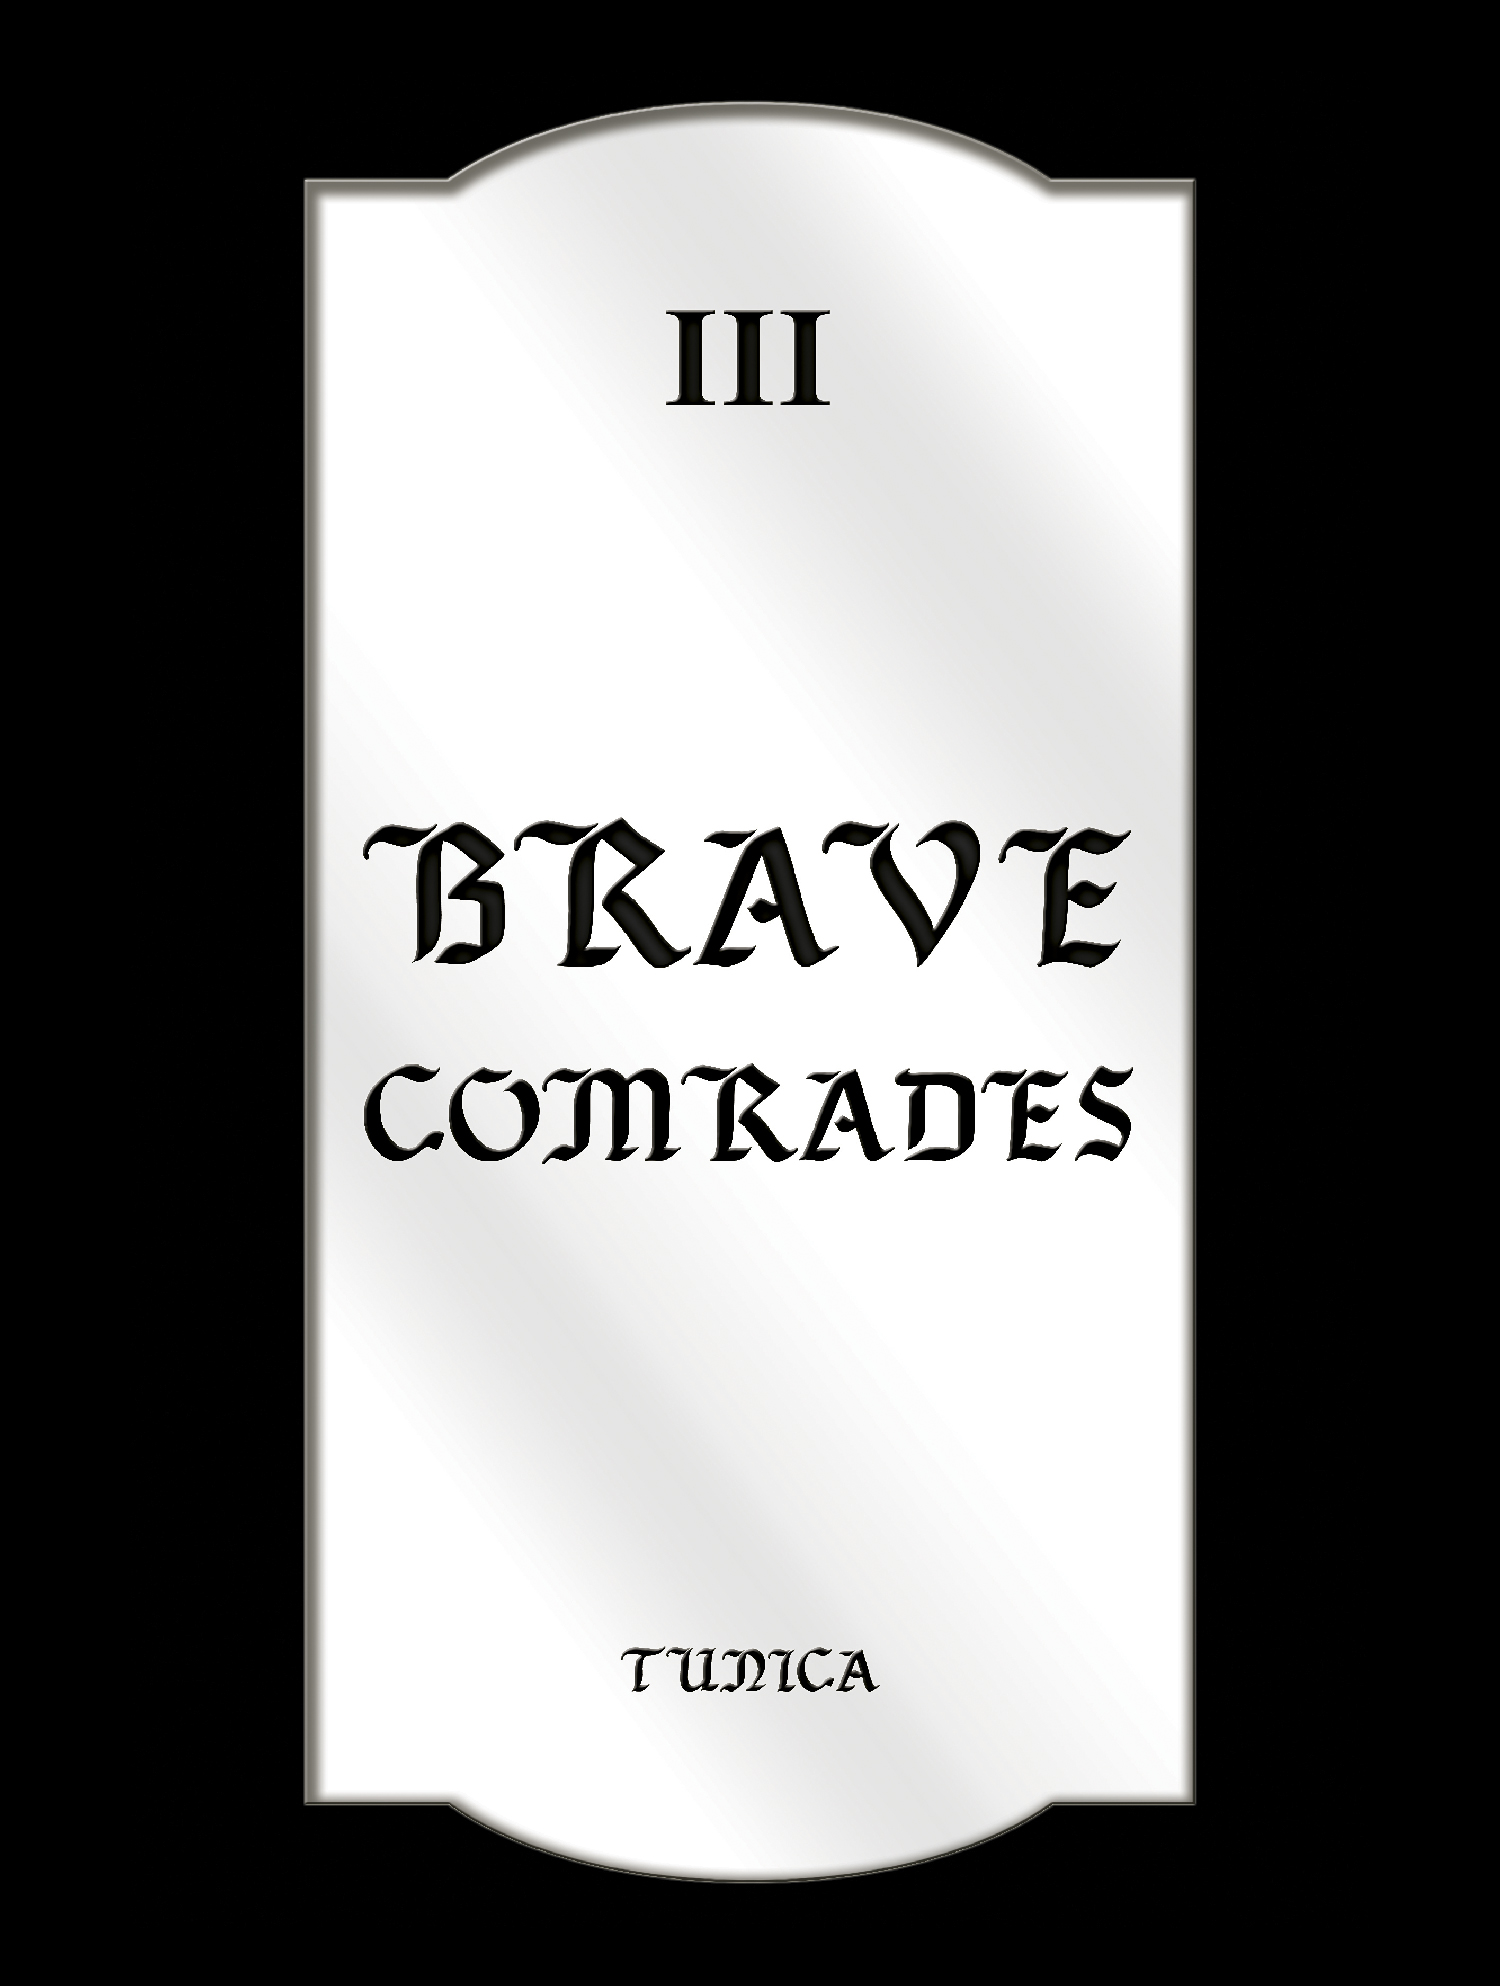 Brave Comrades, Mirrored Plexiglass, 11.48 x22.98 inches, 2016